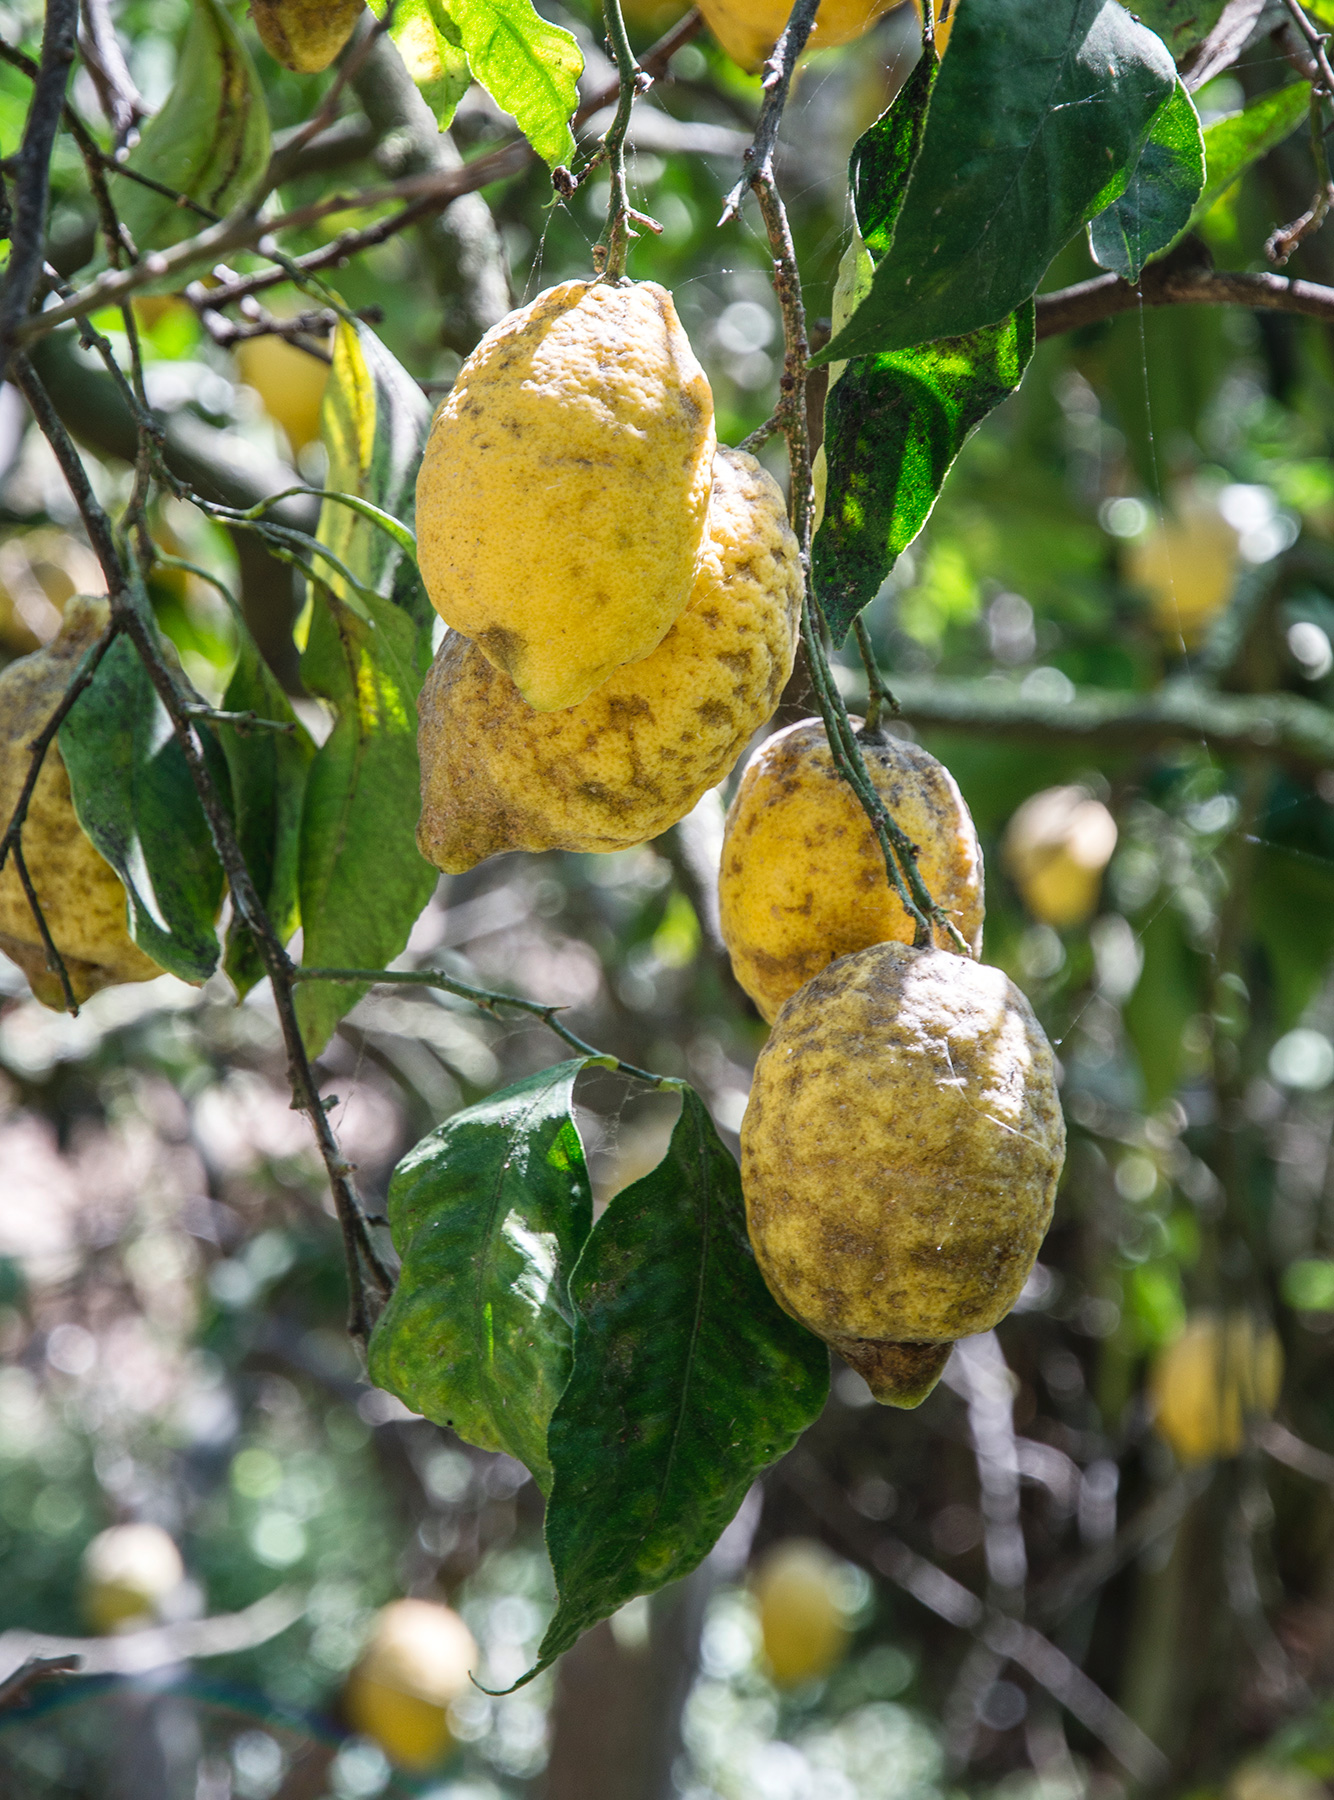 Lemons on a tree in the sun